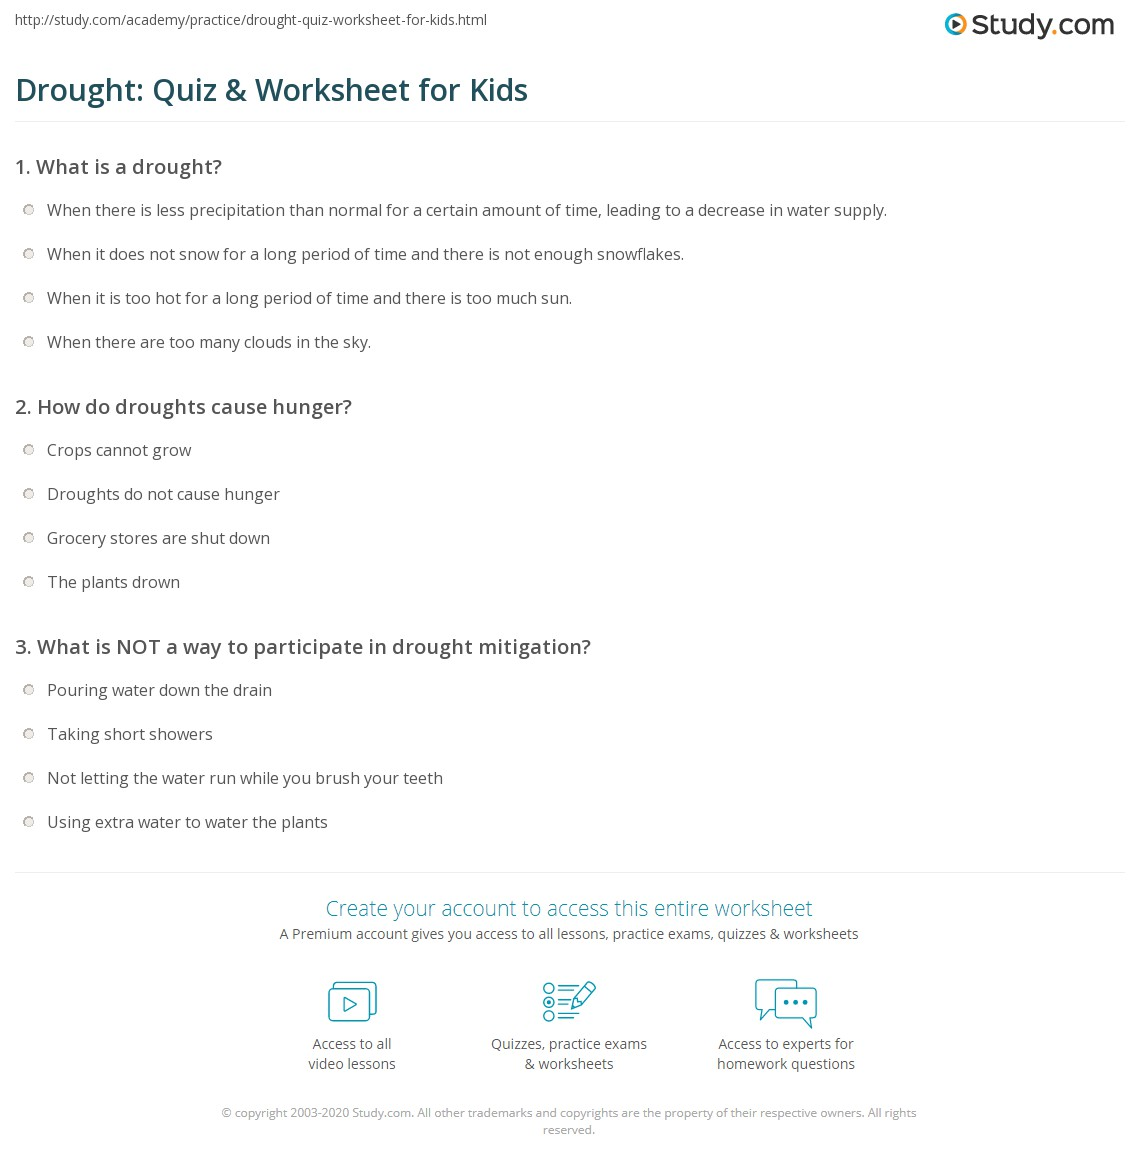 Drought Quiz Worksheet for Kids – Worksheet for Kids